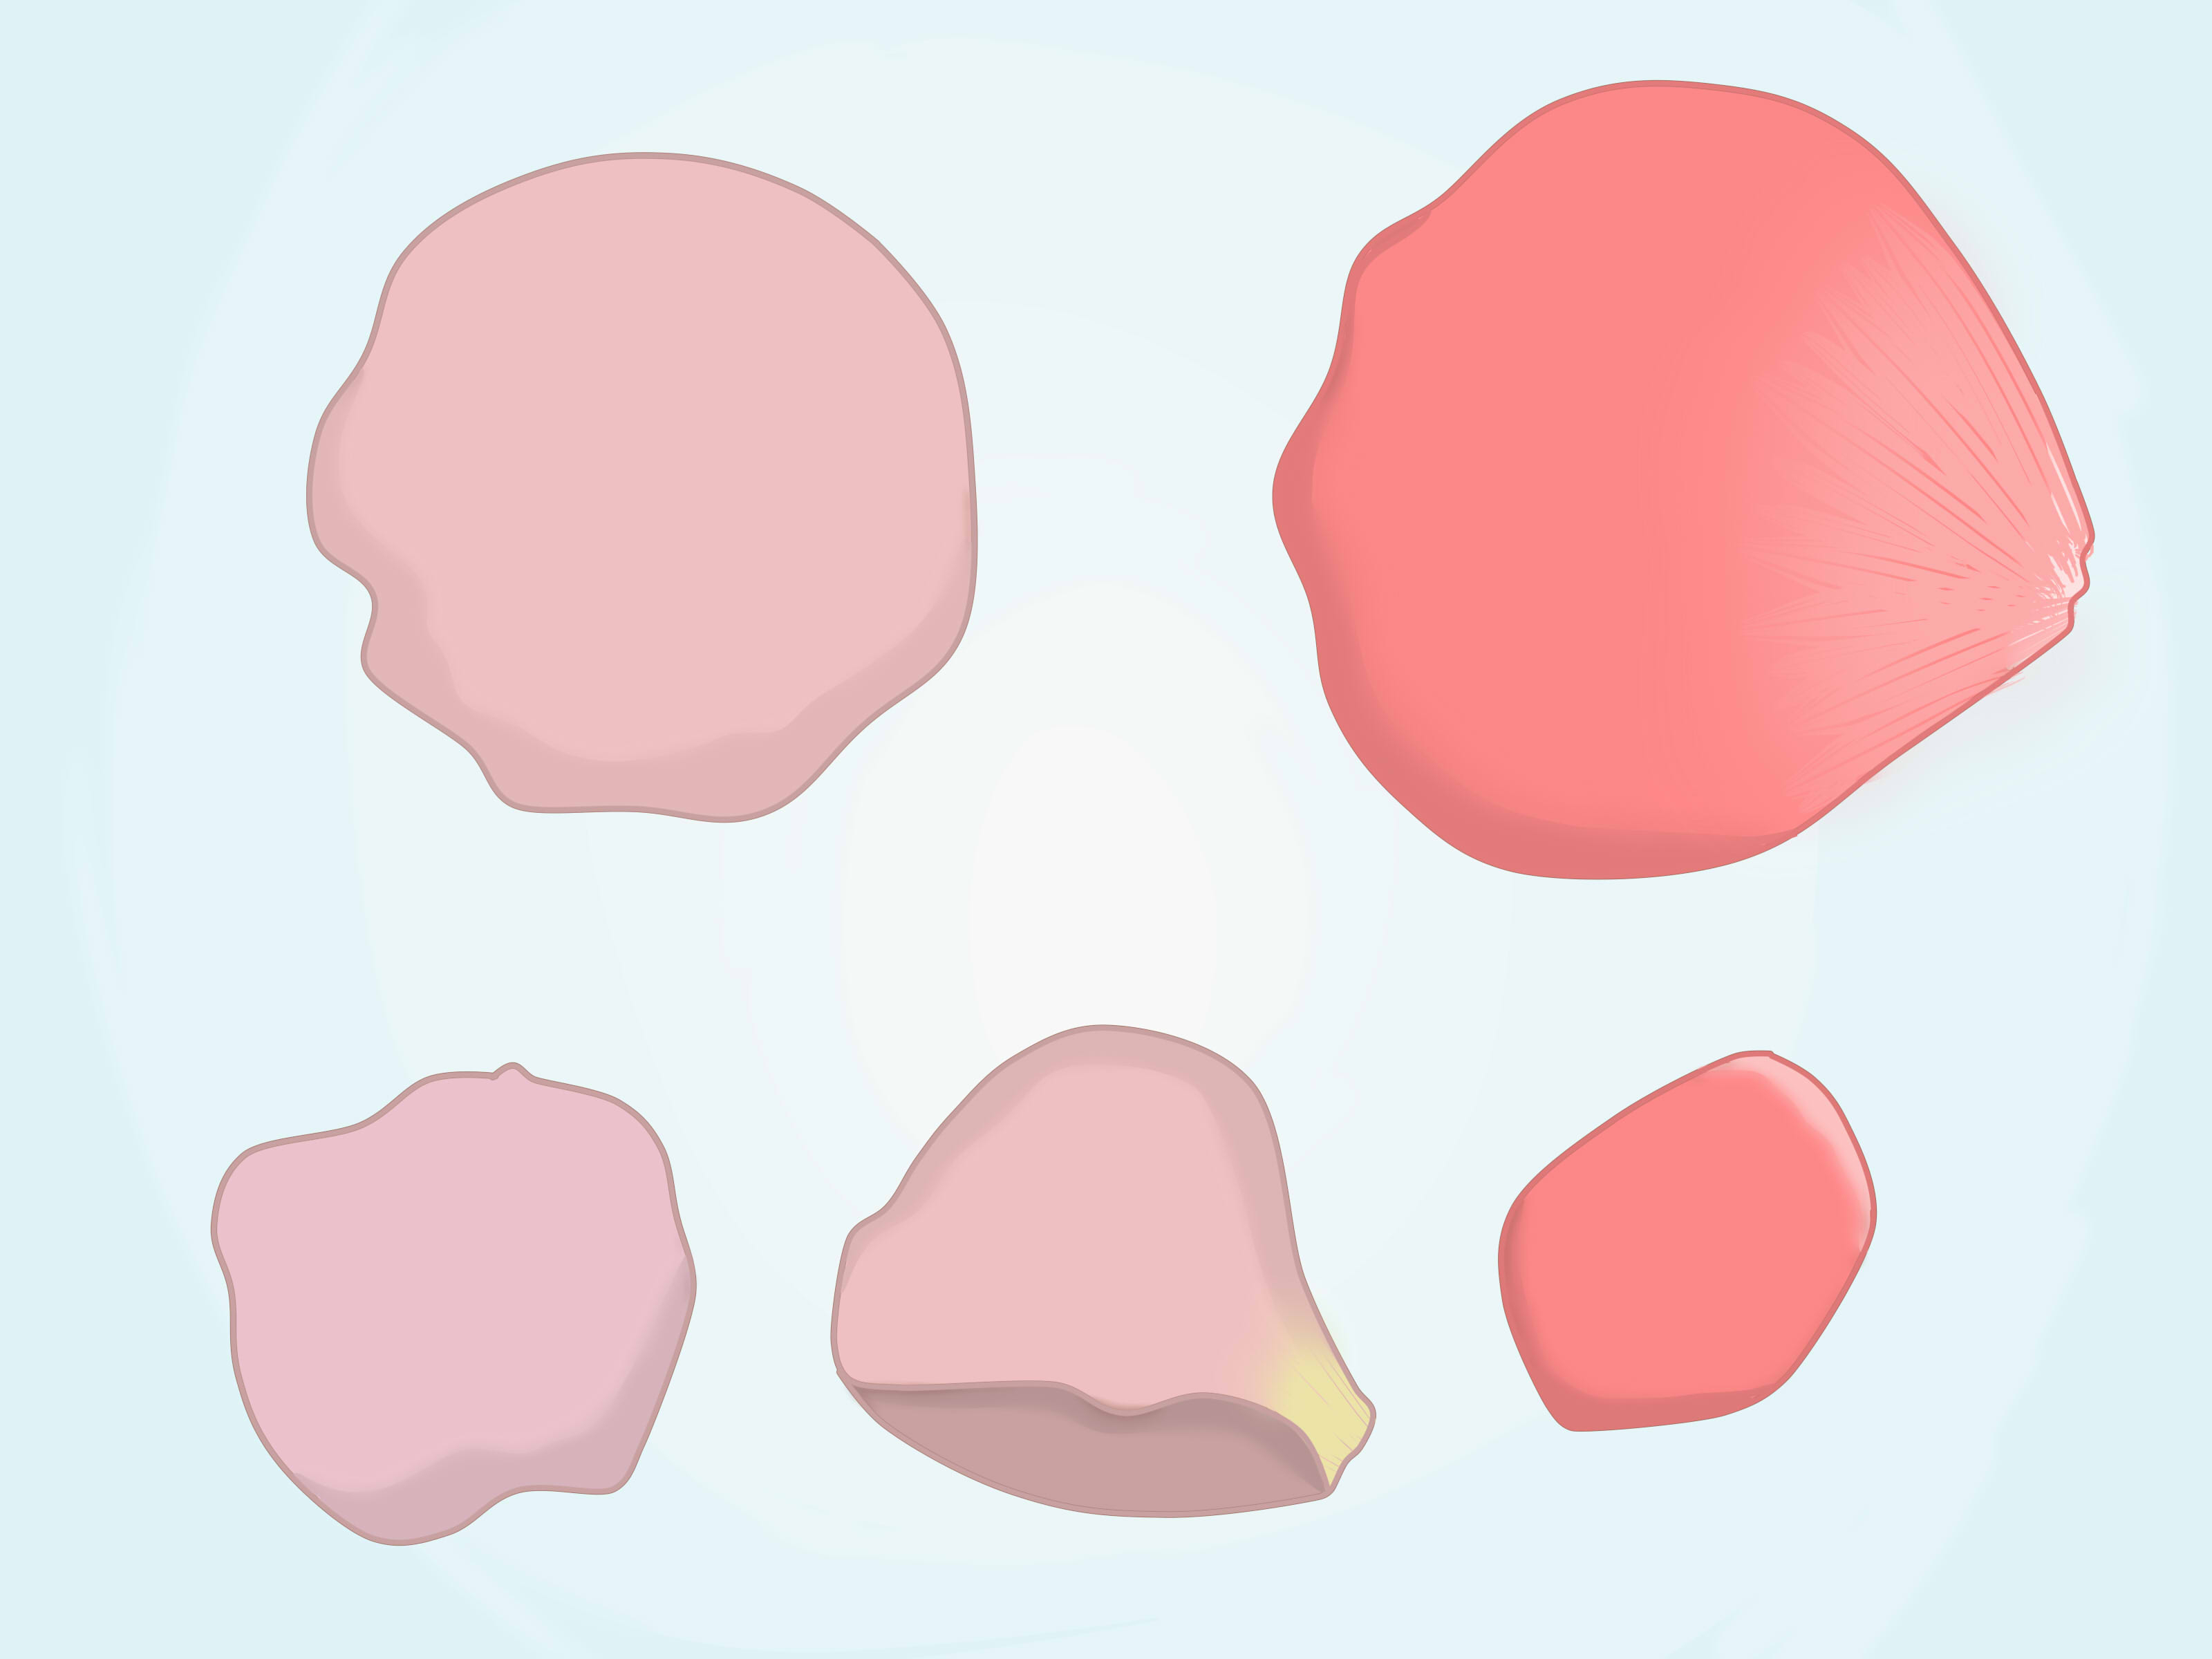 3200x2400 Flower Petals Drawing How To Draw A Rose Petal 6 Steps (With